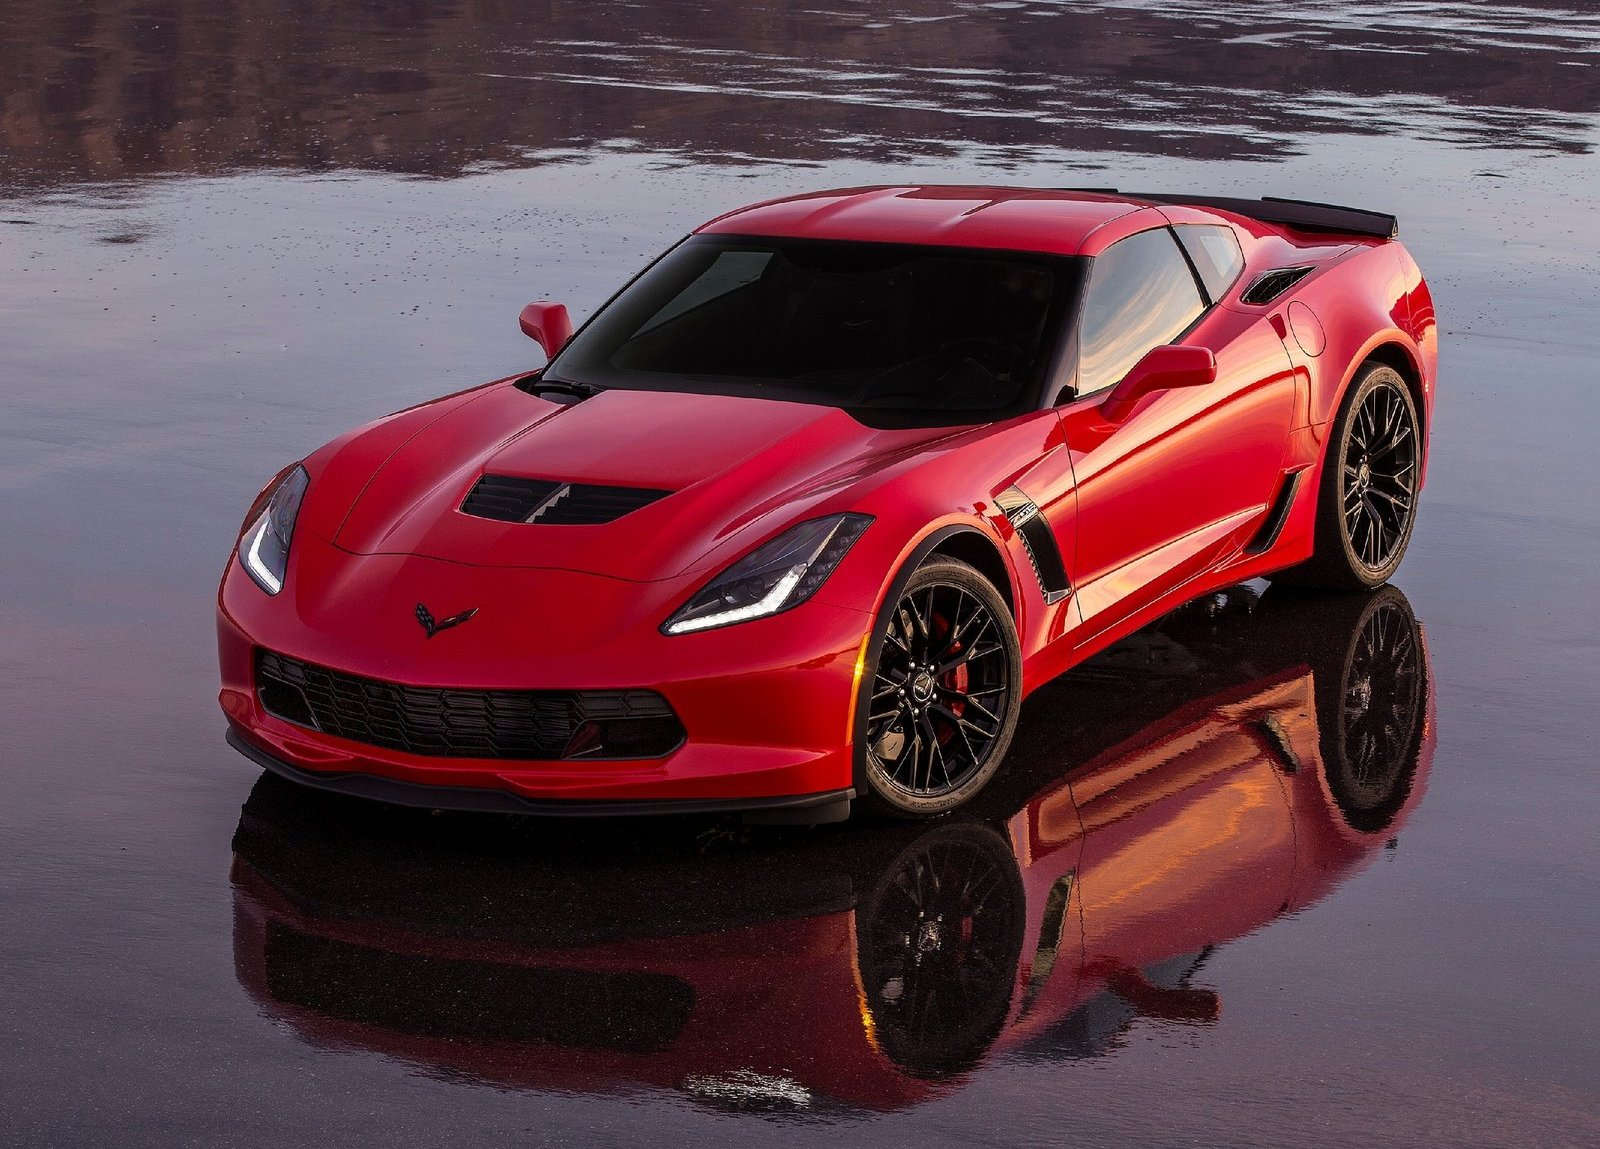 Hd Wallpaper 1970 Chevelle Car First Production 2015 Corvette Z06 Auctioned For Charity